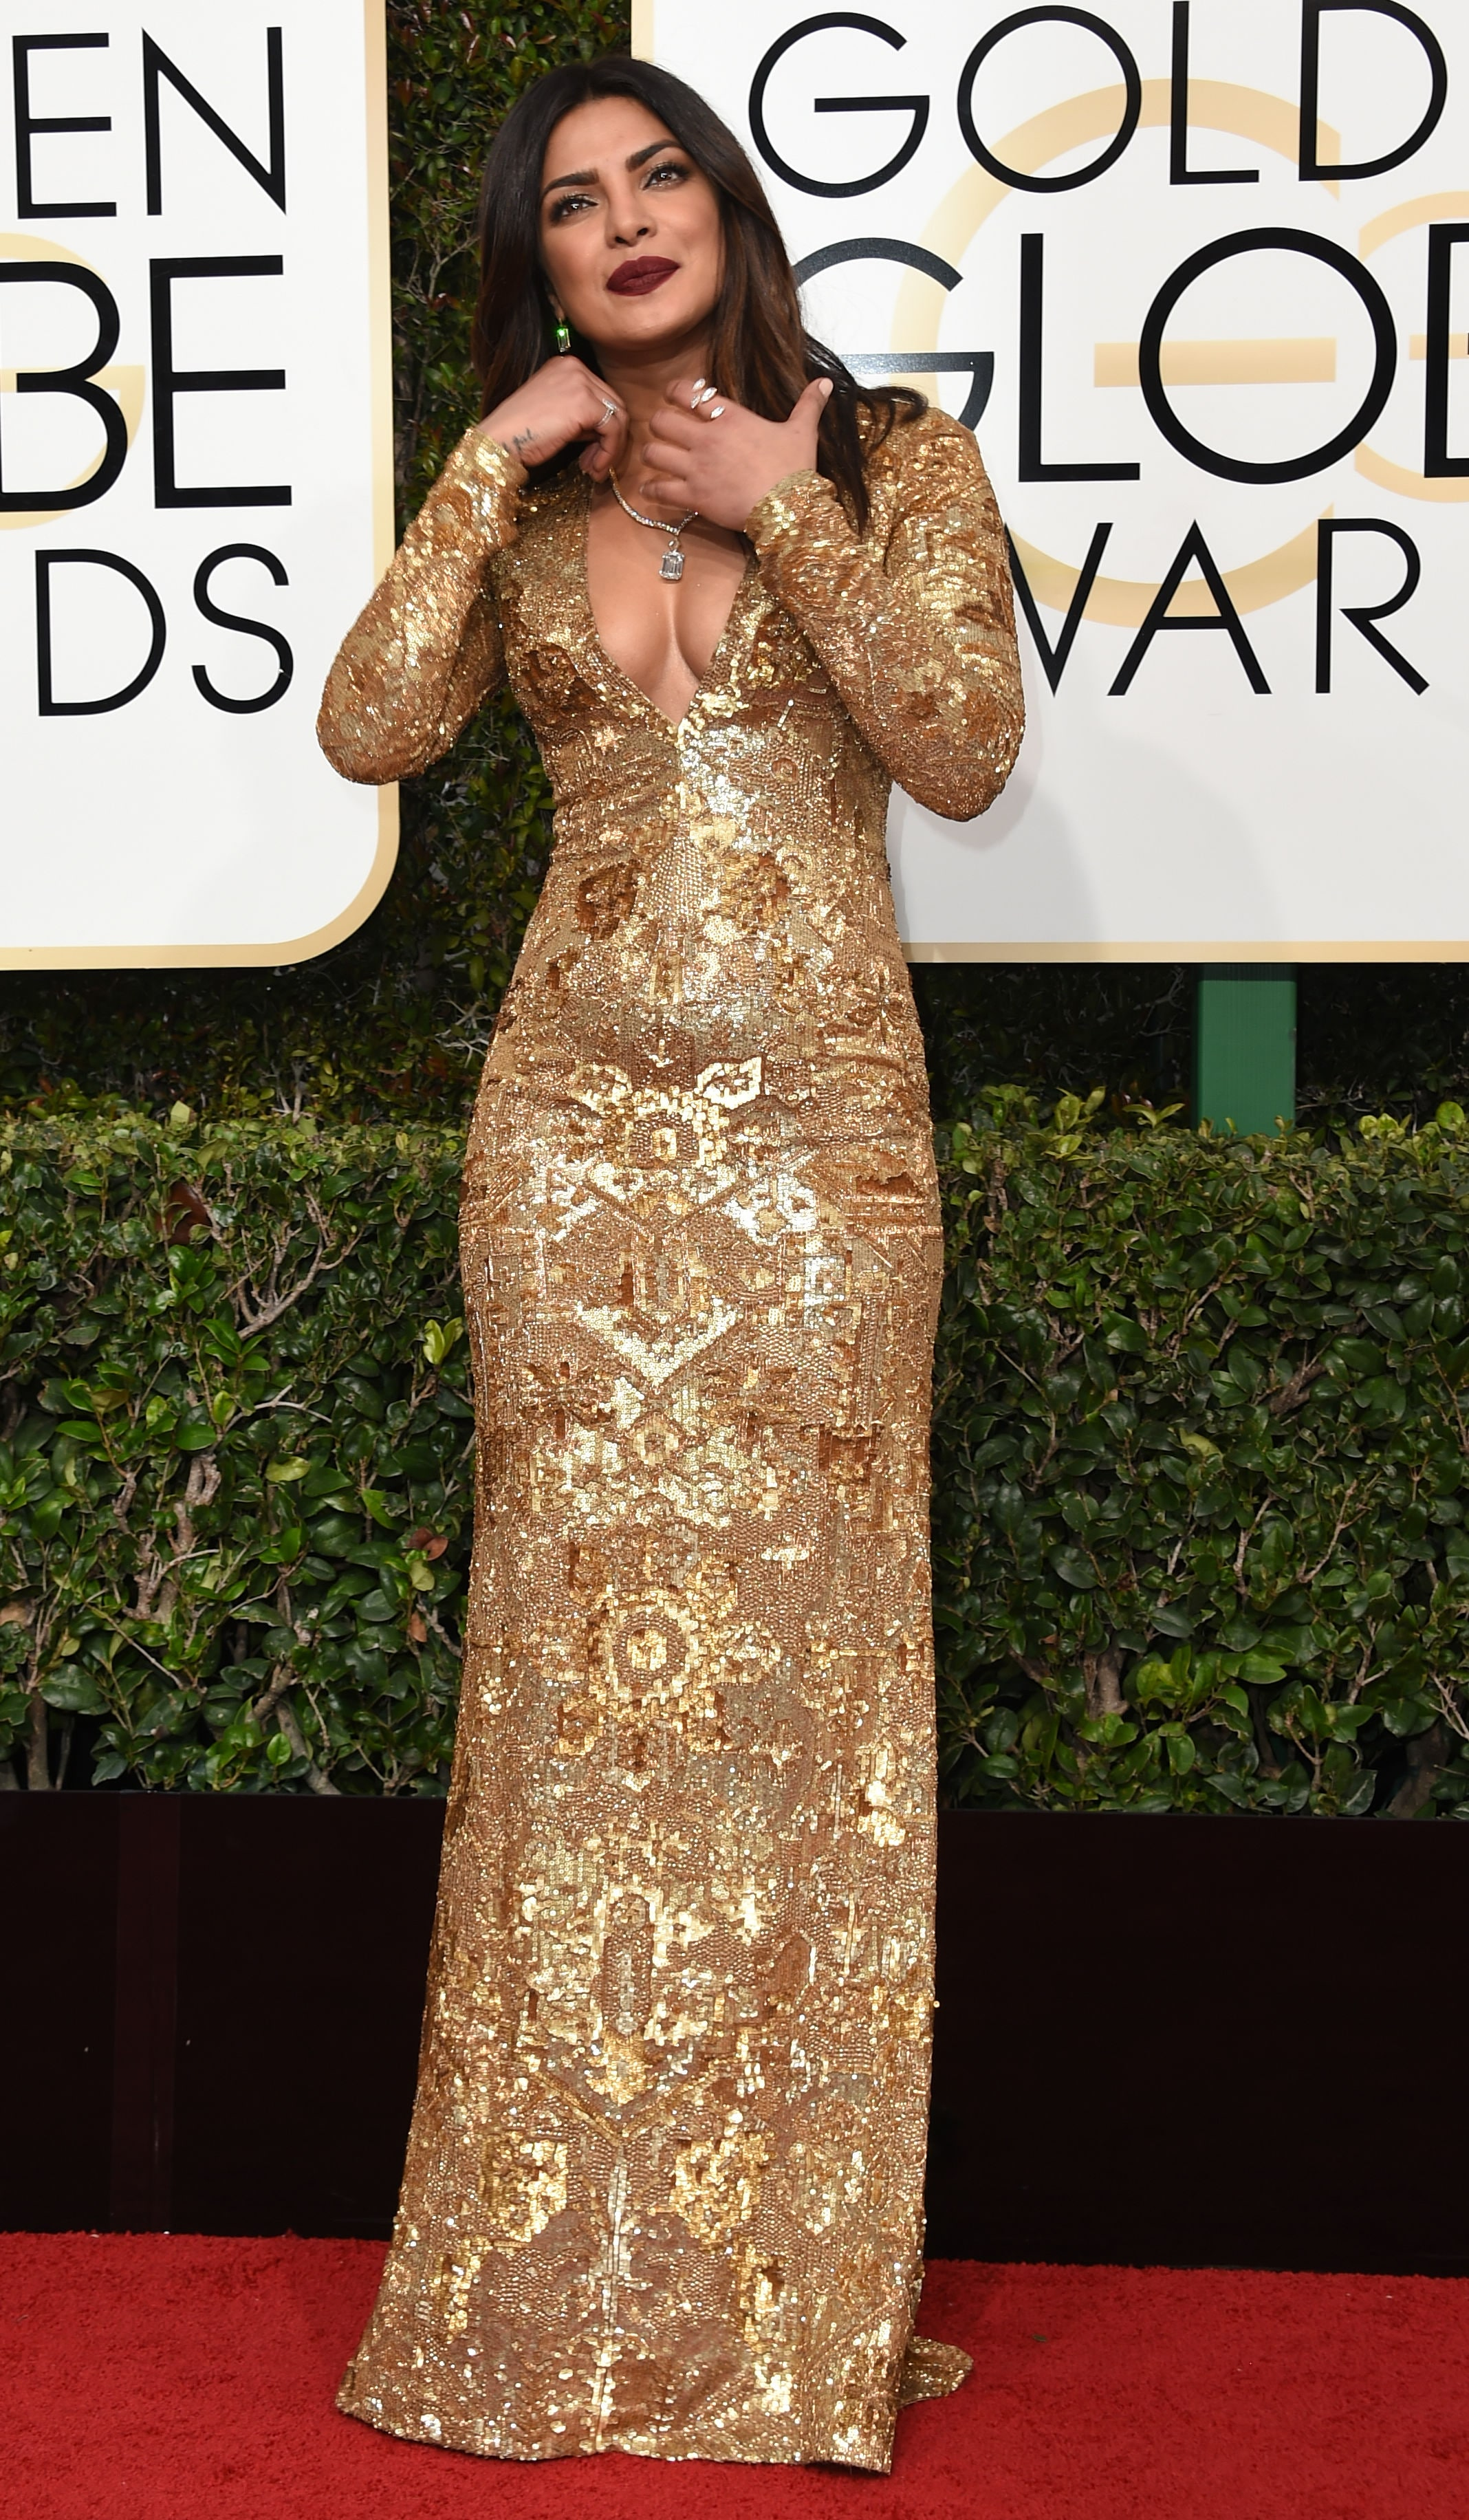 priyanka chopra at the golden globes: a walkthrough in pics